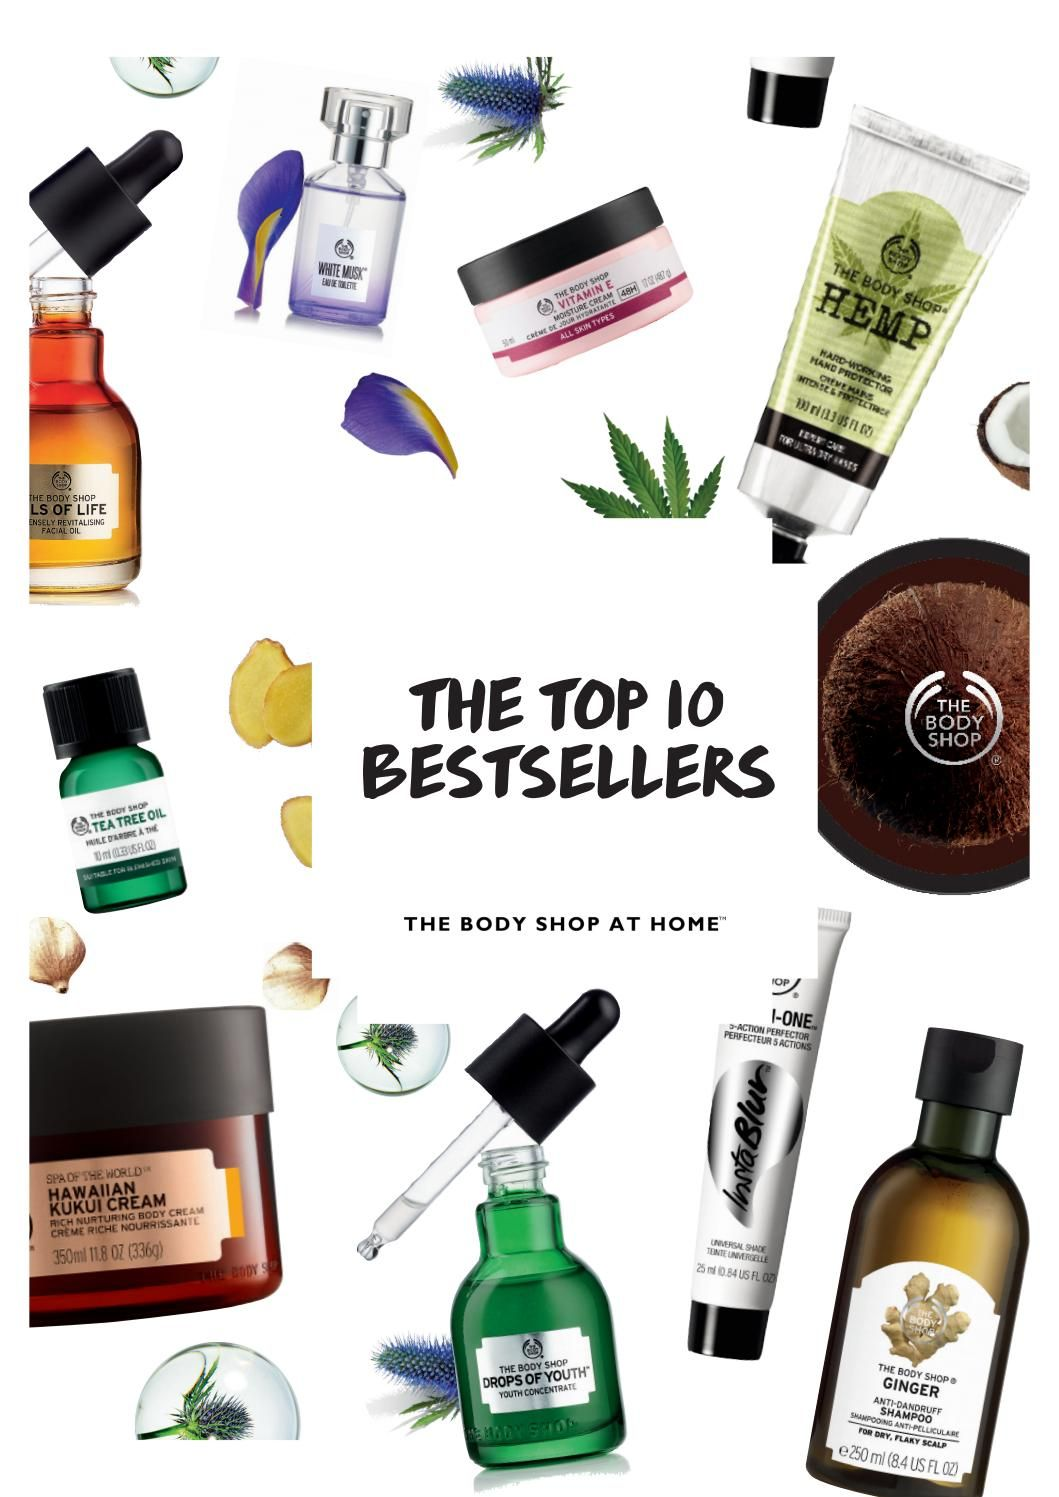 Top Ten Bestsellers Guide Best Body Shop Products Body Shop At Home The Body Shop